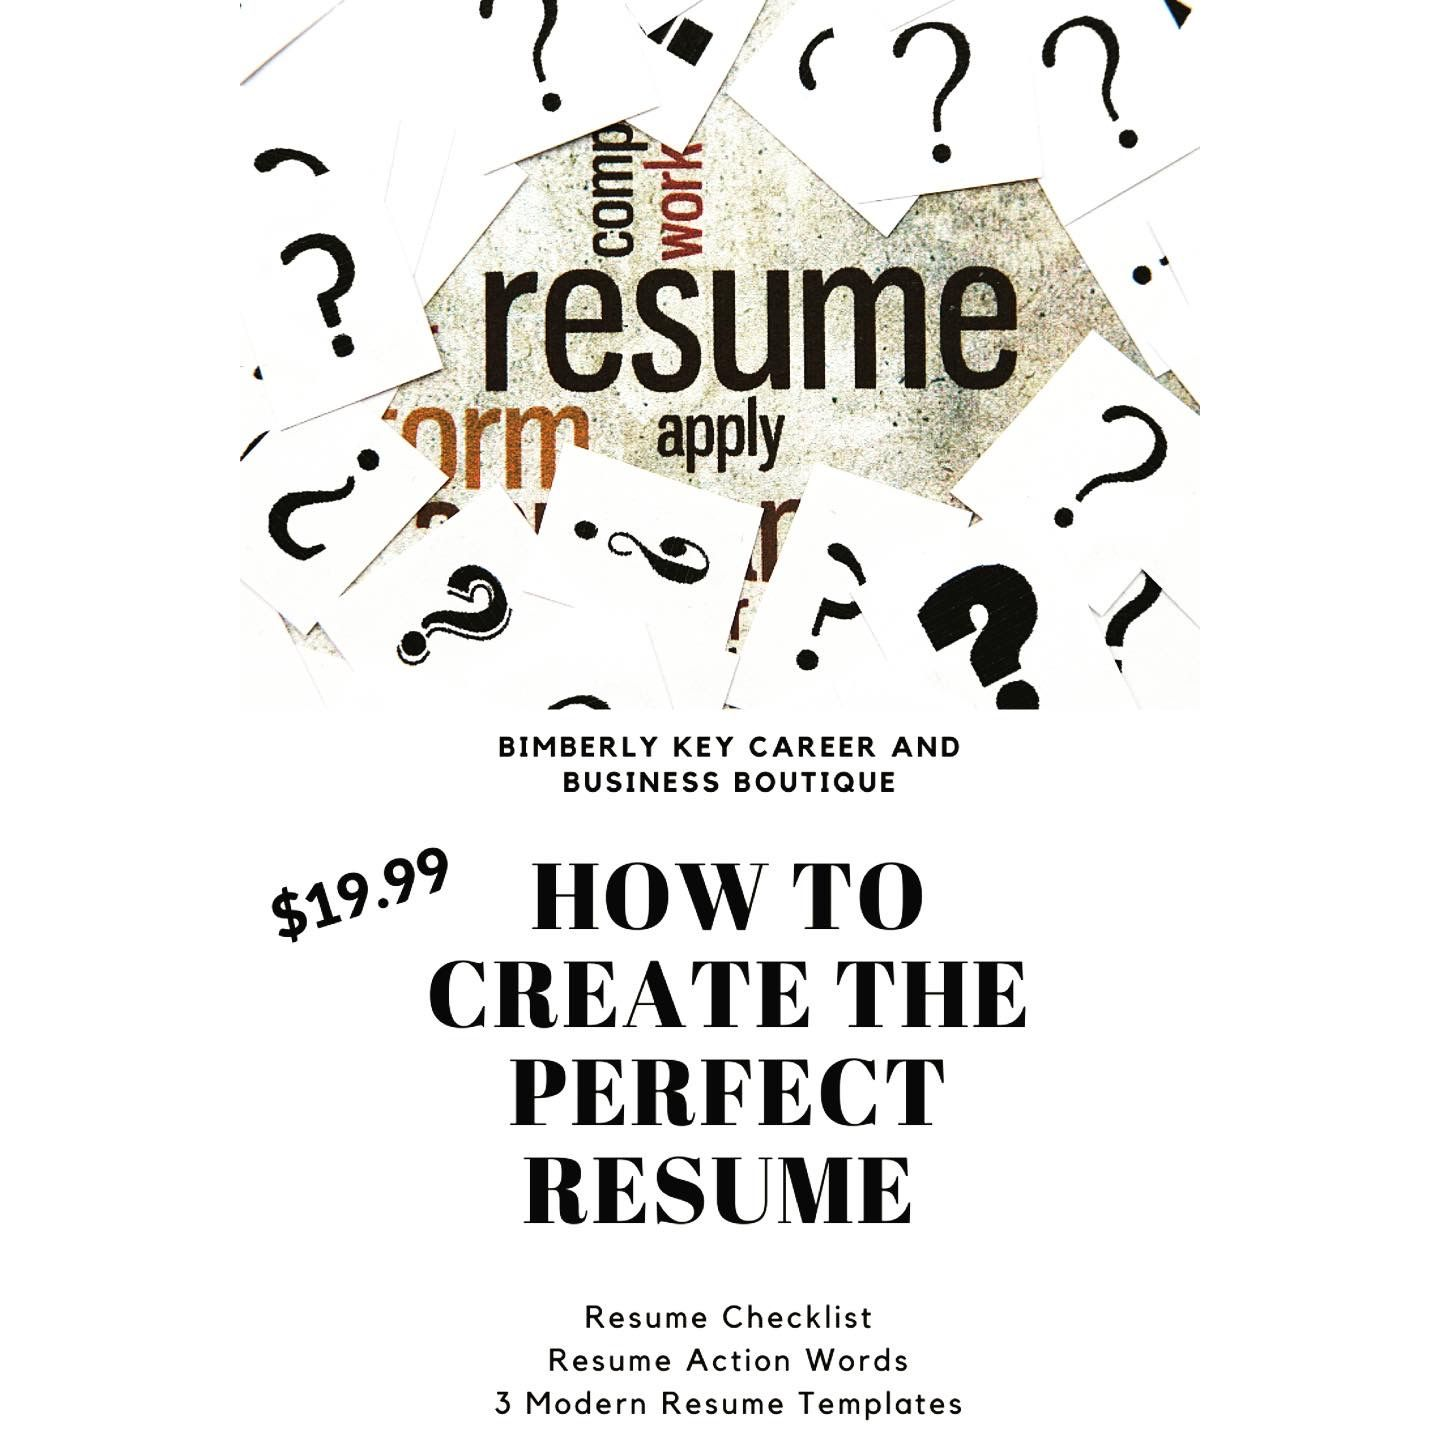 Bimberly Key Resume Template in 2020 Resume action